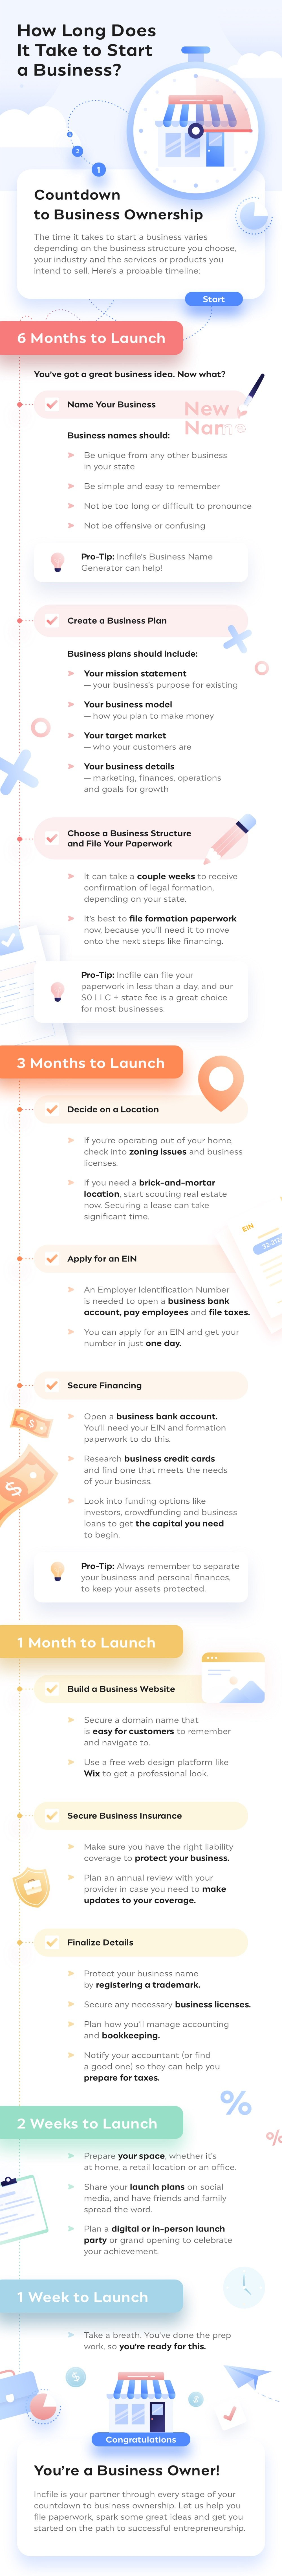 How Long Will It Take to Start Your Business?